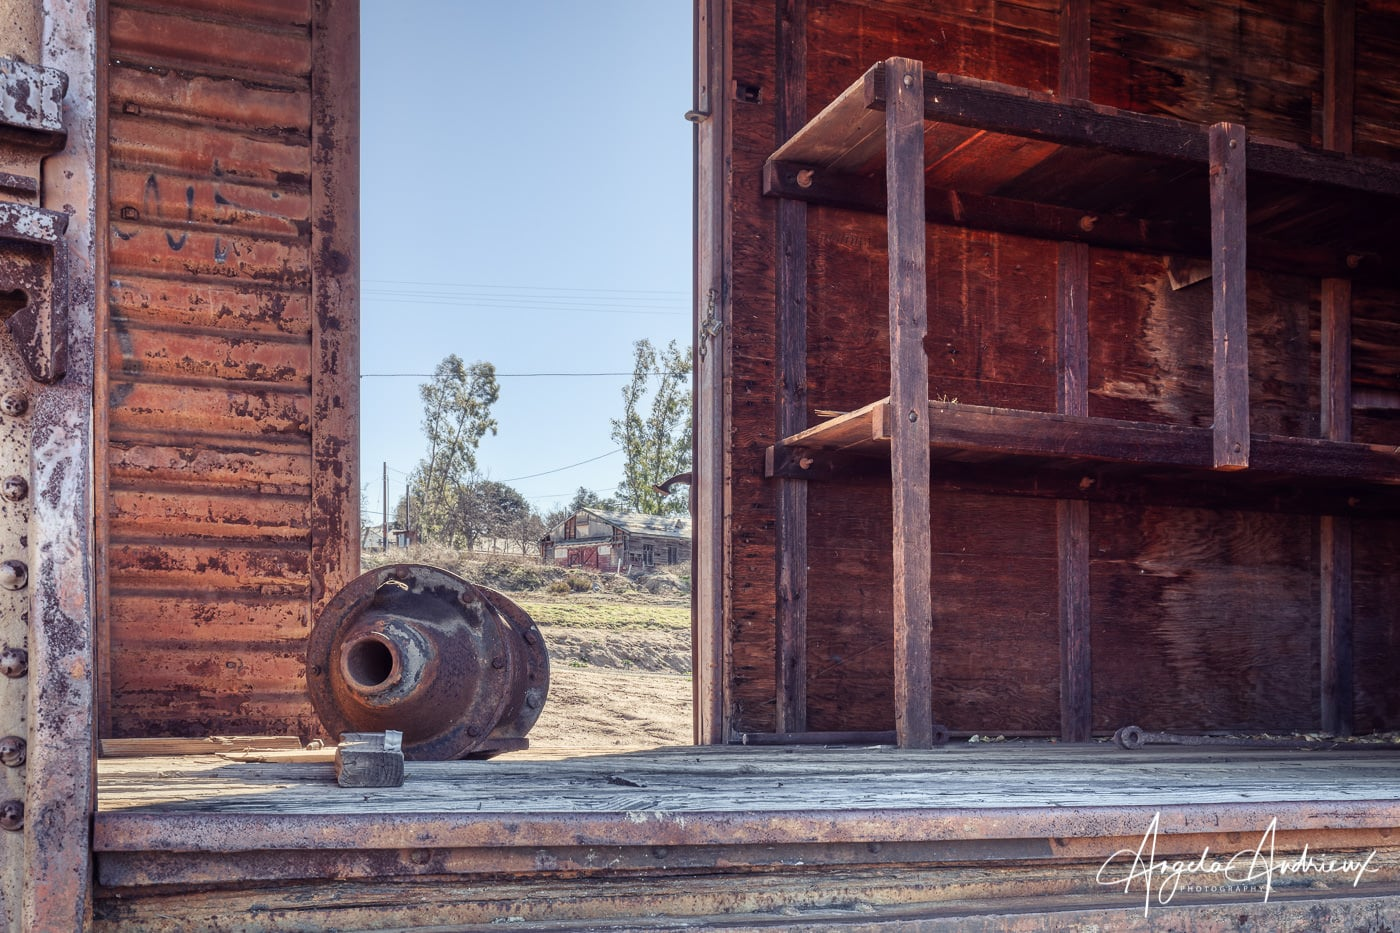 Peering through an open rail car at the Pacific Southwest Railway Museum in Campo, California